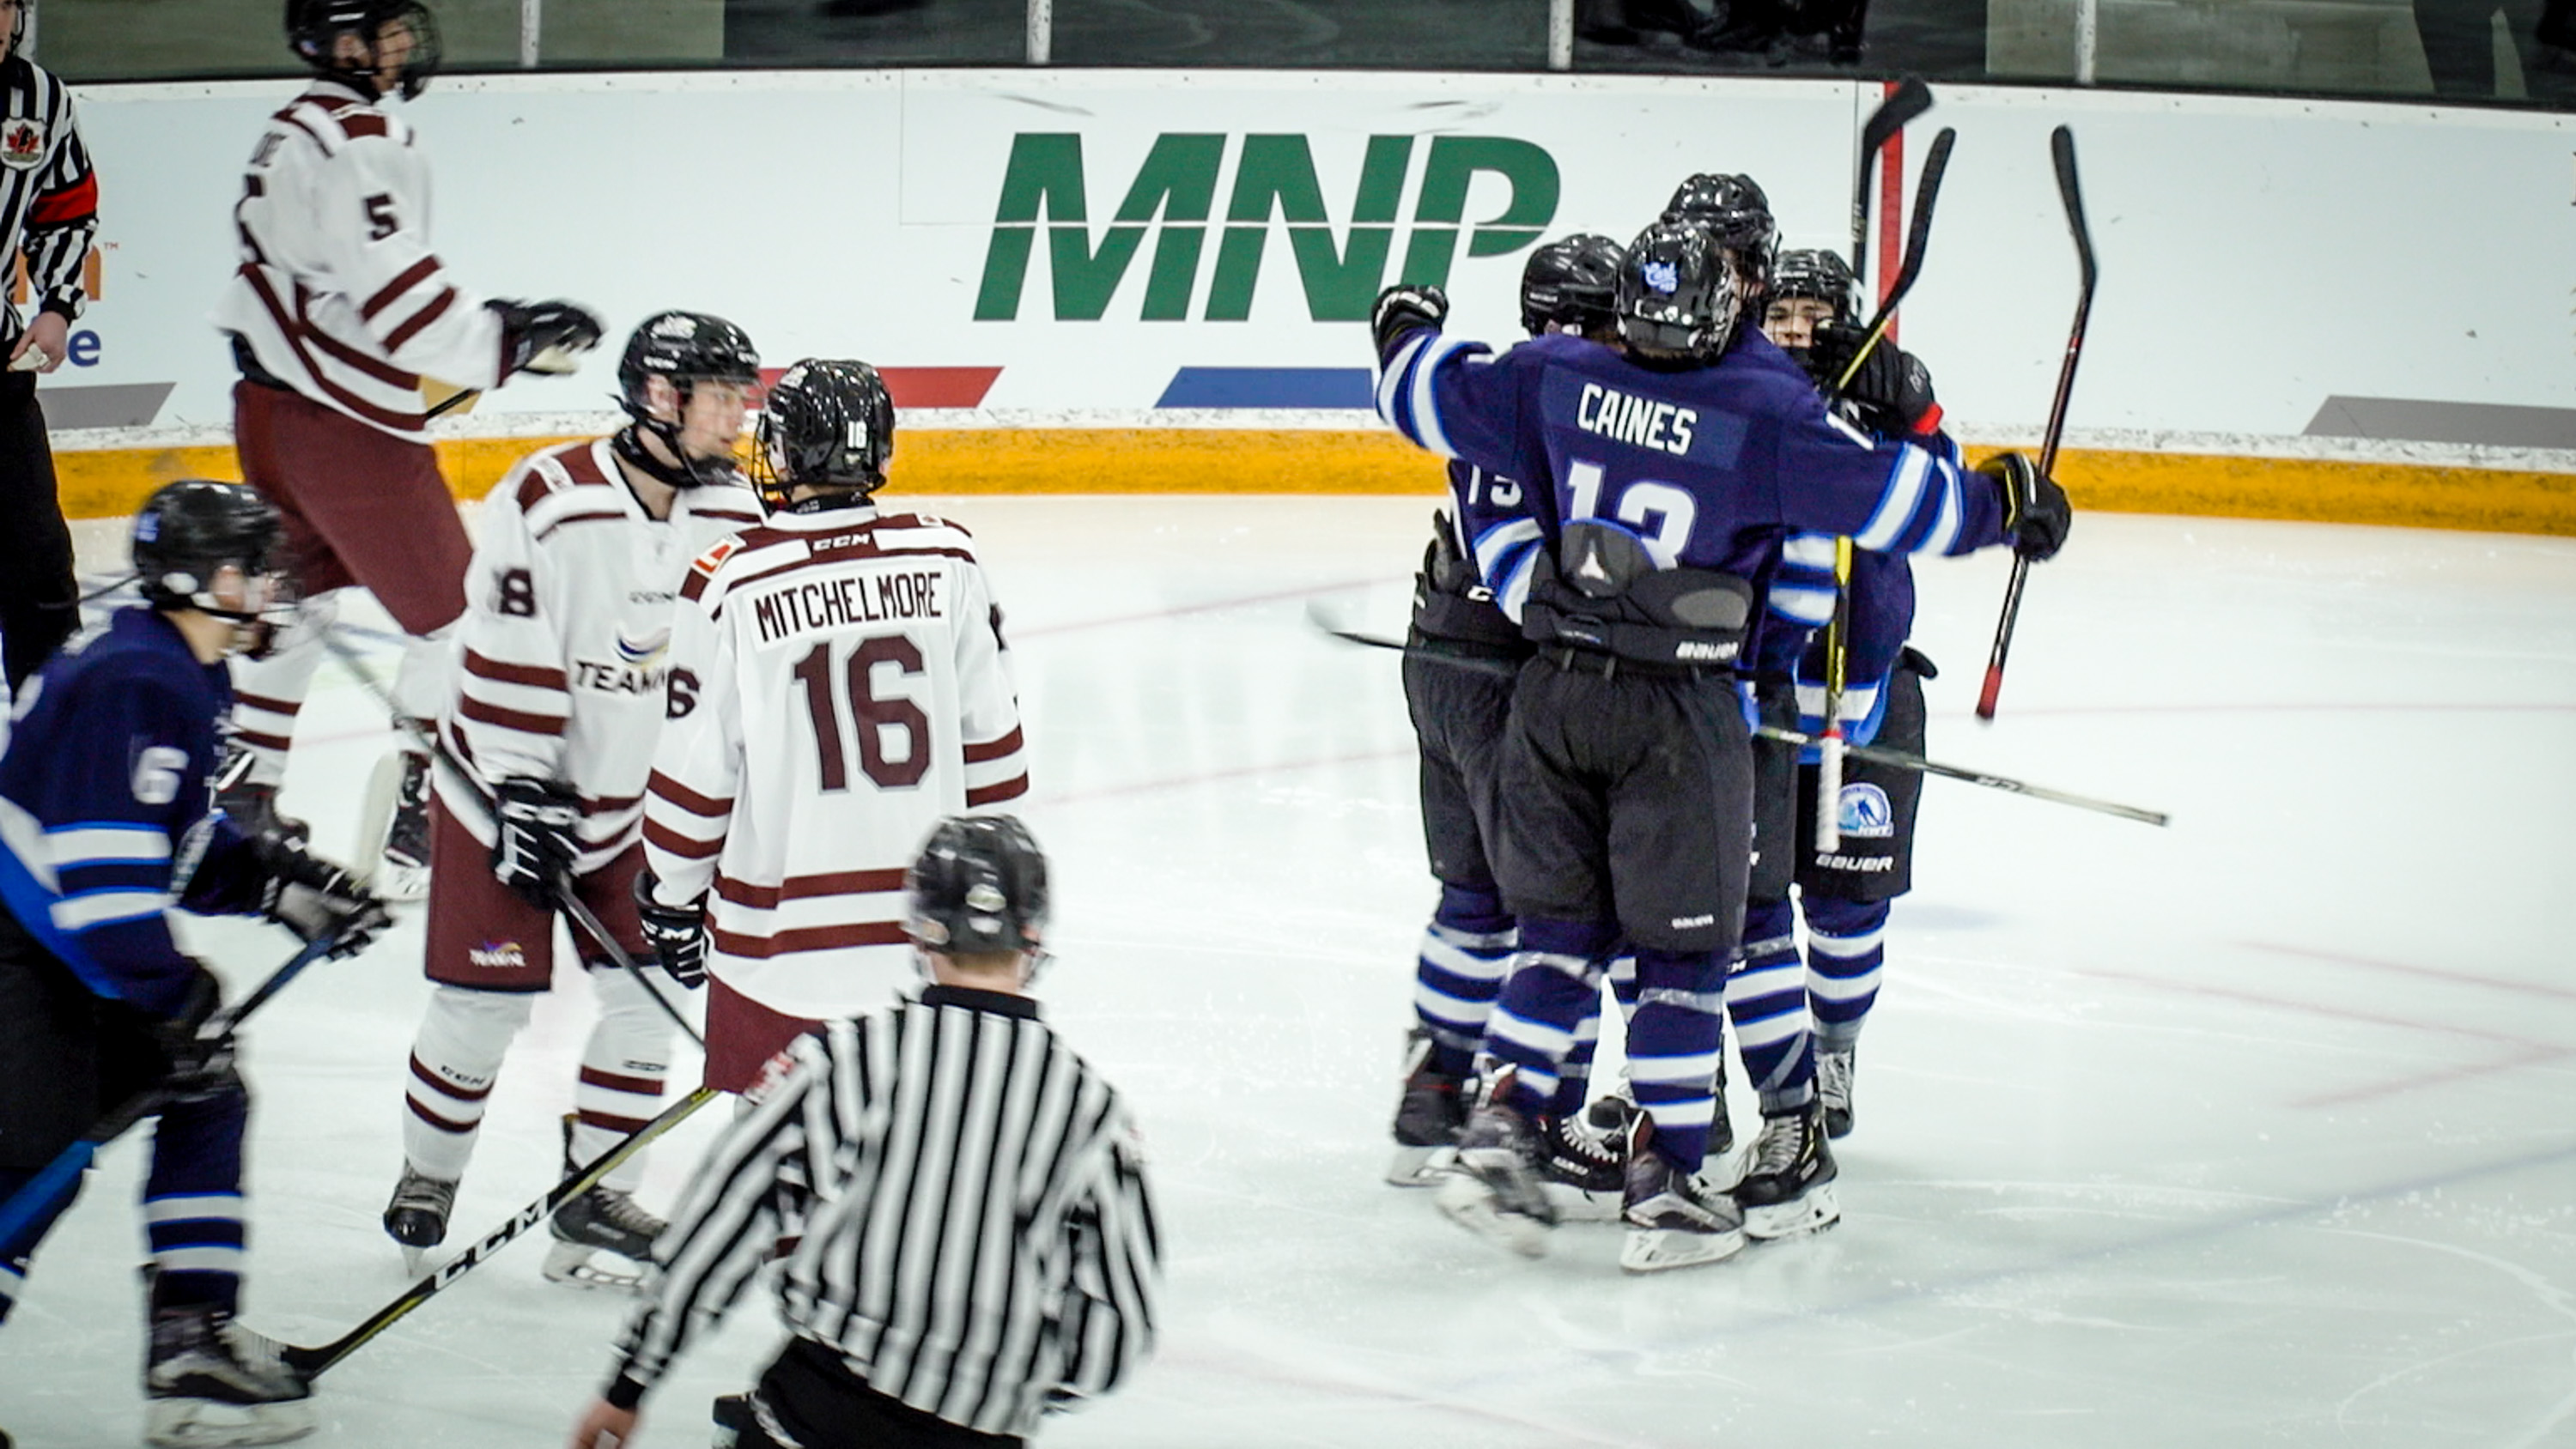 Team NT players celebrate scoring a goal against Team NL at the 2019 Canada Games